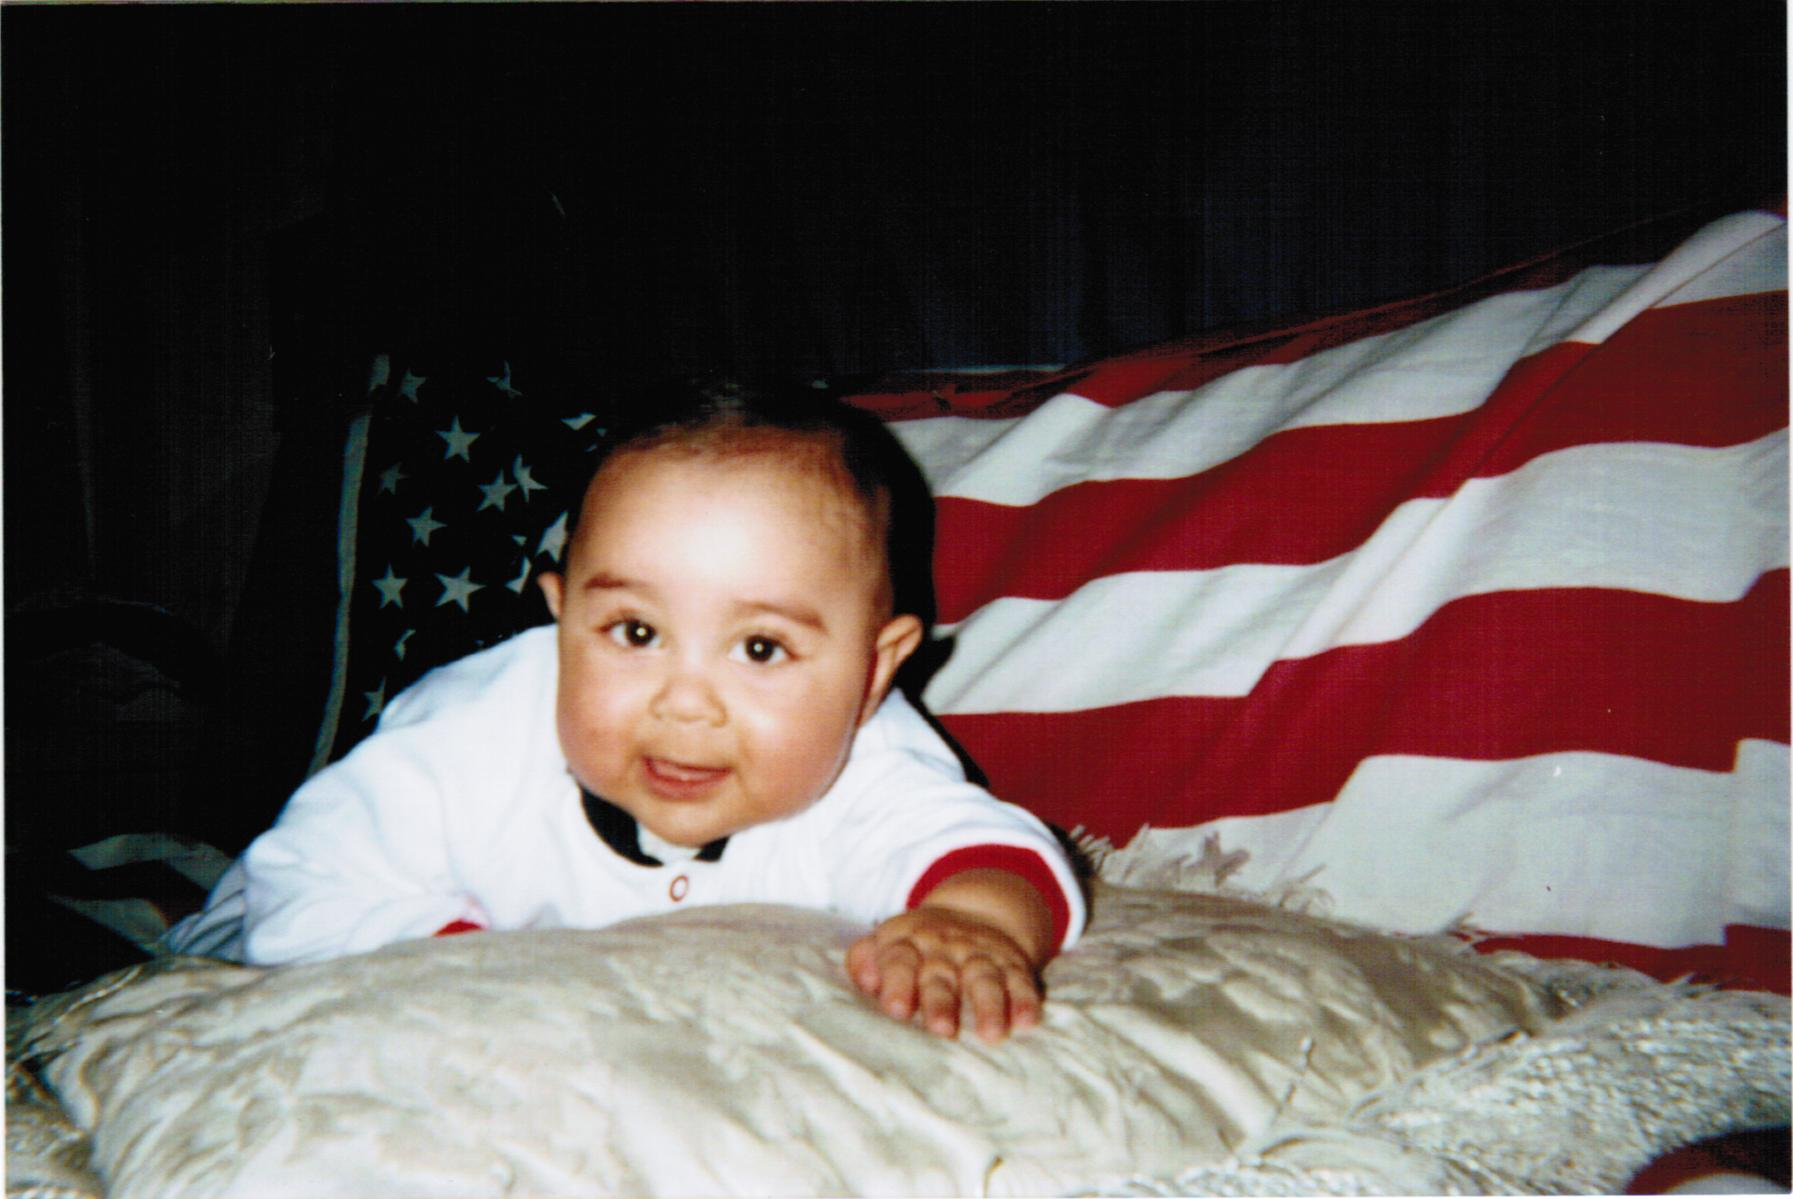 Rishi the proud American.